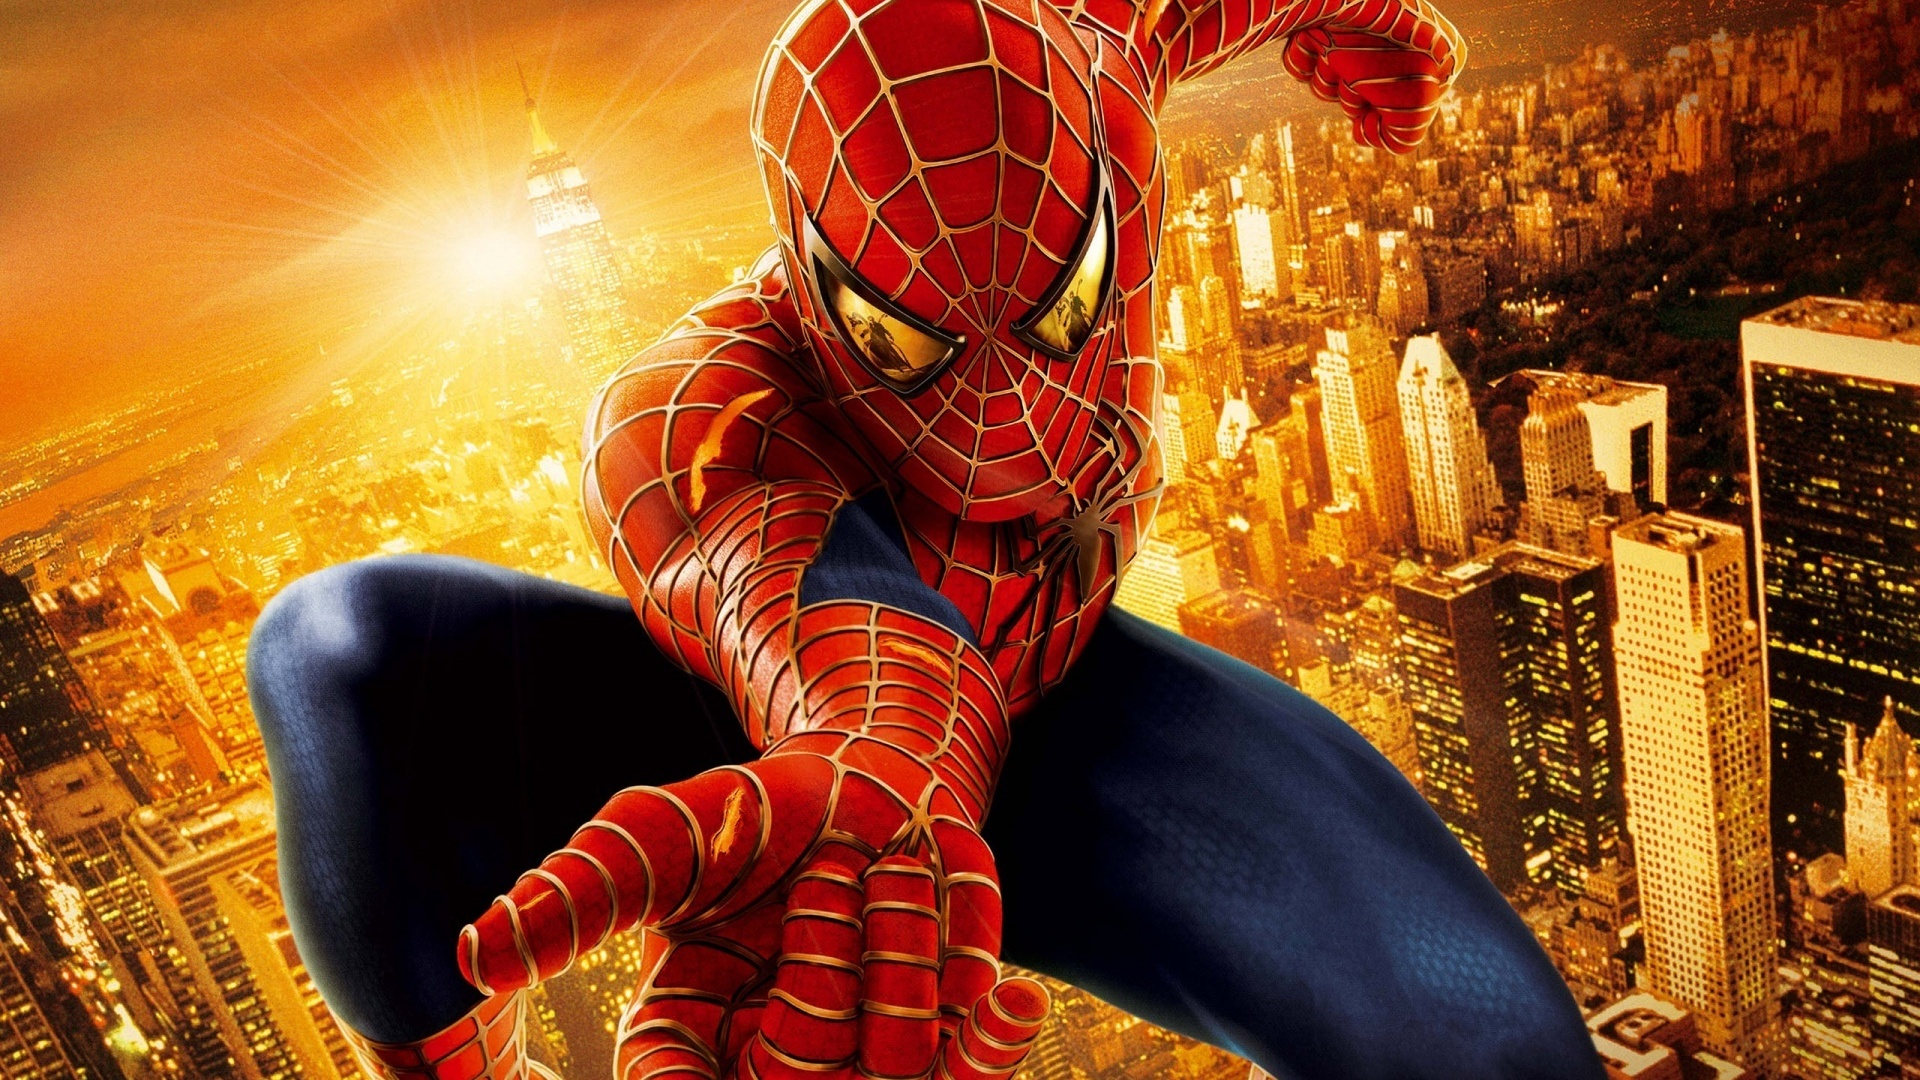 Spider Man in the city Wallpapers HD 1080p HD Desktop Wallpapers 1920x1080